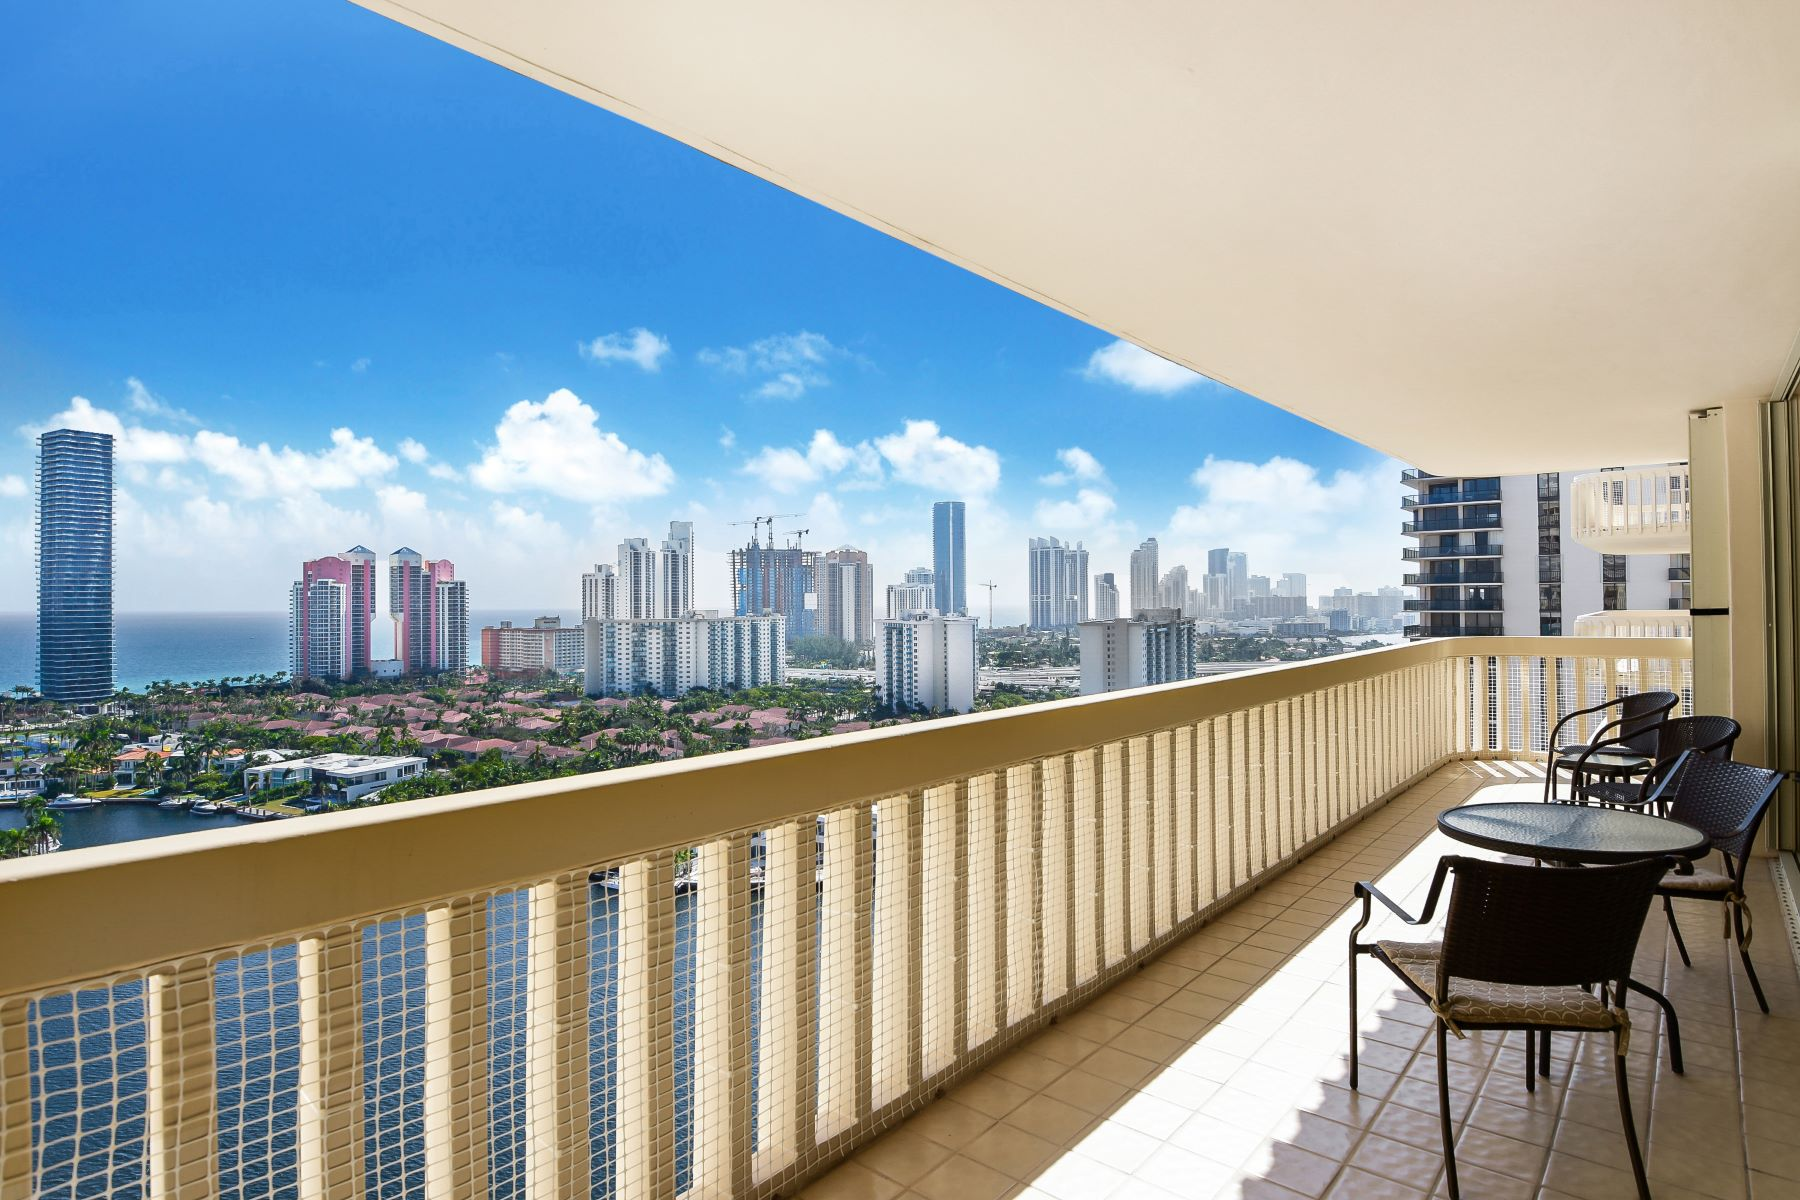 Condominium for Sale at 19707 Turnberry Way 19707 Turnberry Way 22F, Aventura, Florida, 33180 United States